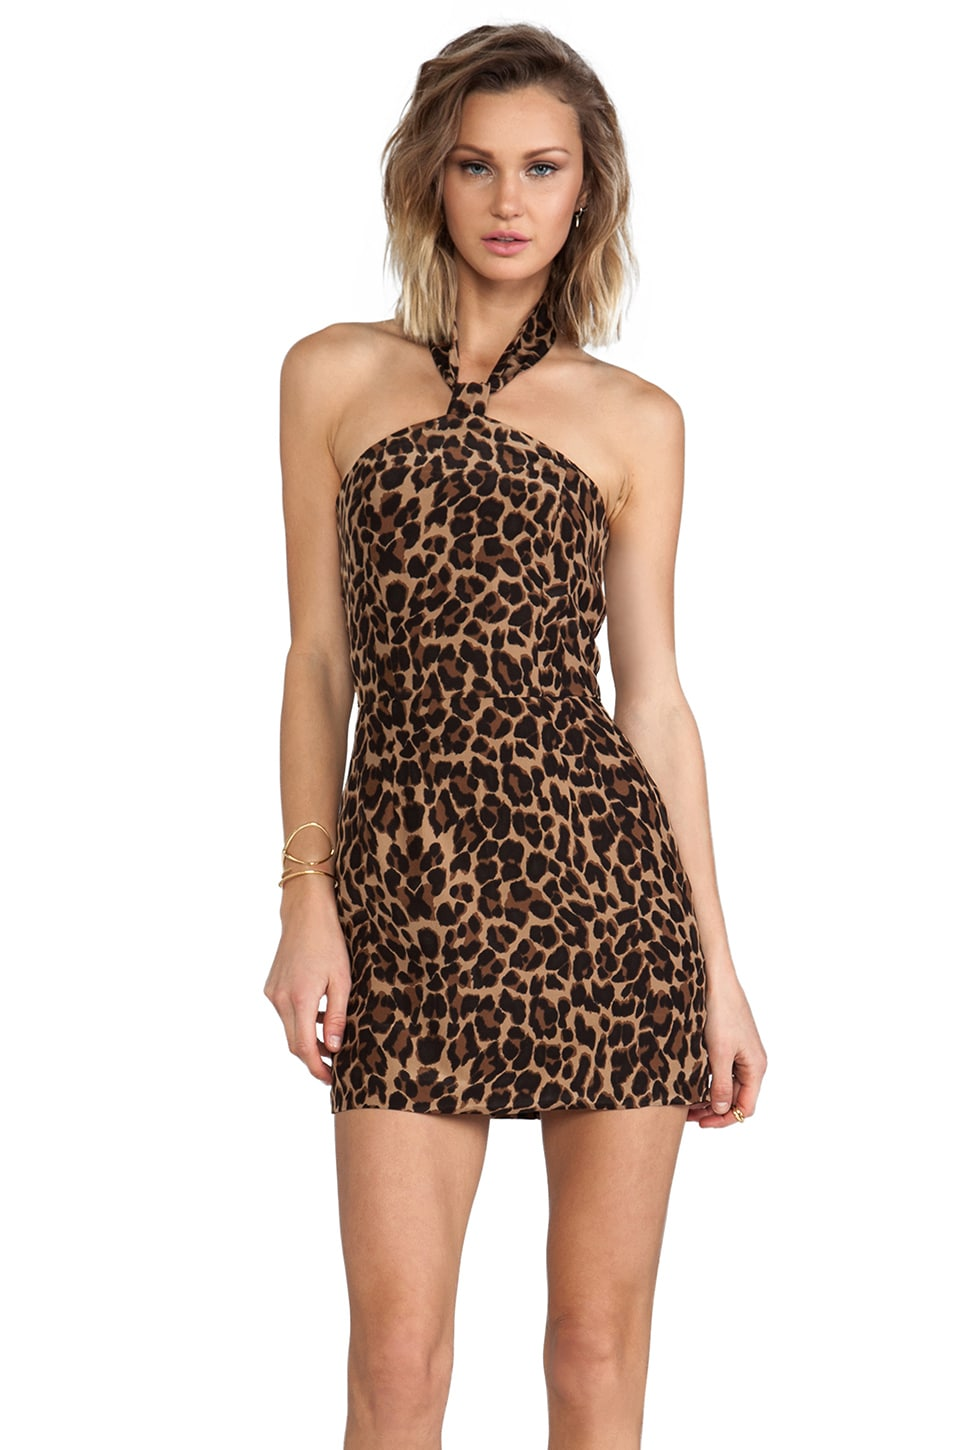 Maurie & Eve Love Affair Dress in Animal